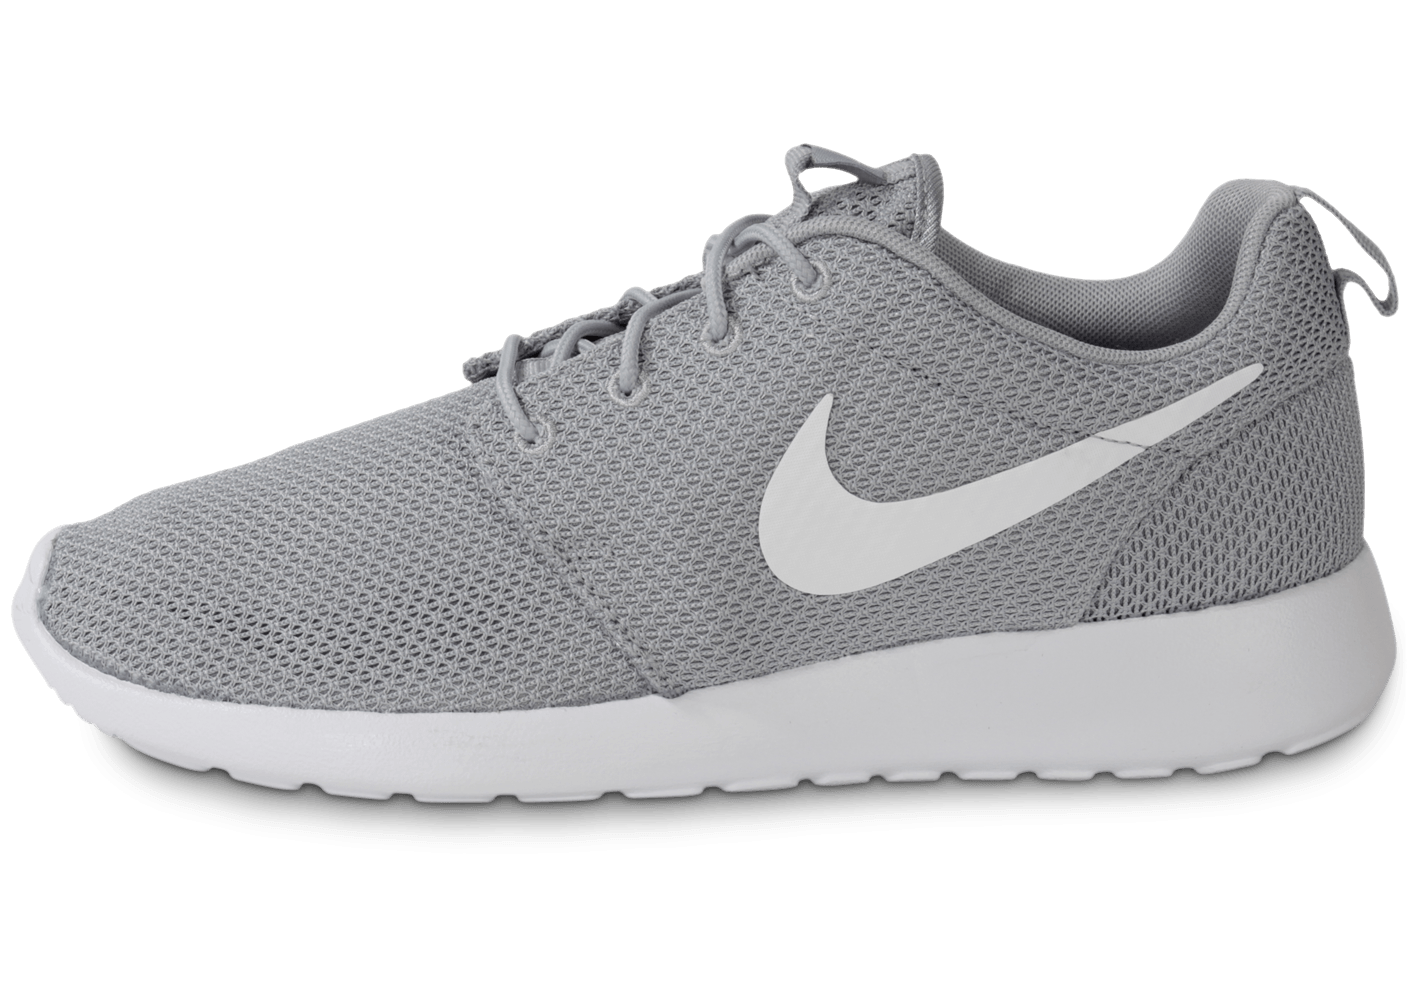 nike roshe run grise chaussures homme chausport. Black Bedroom Furniture Sets. Home Design Ideas